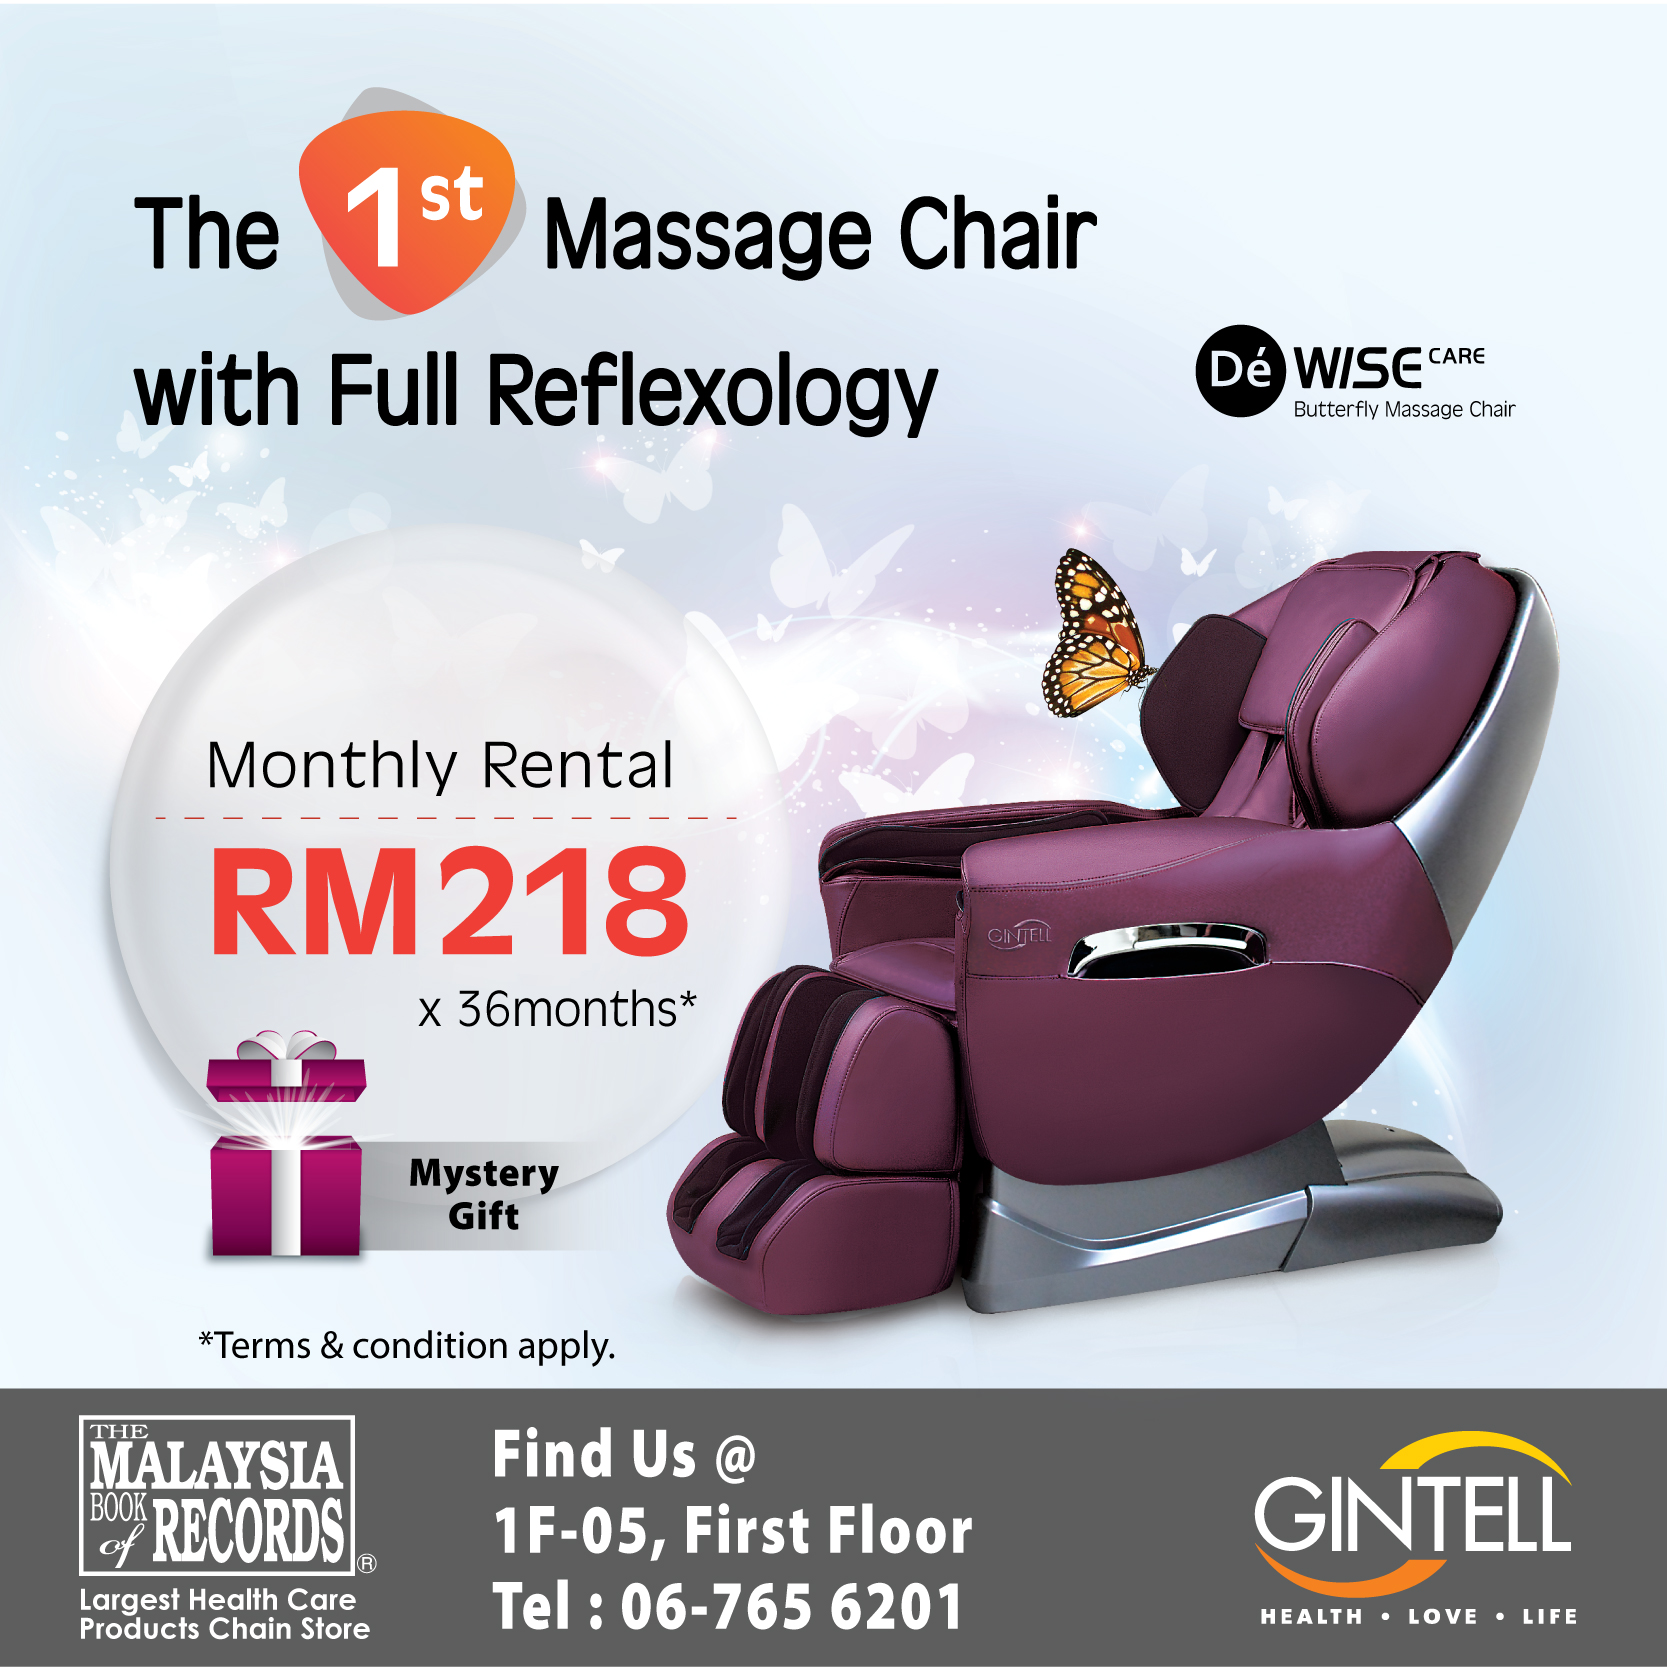 GINTELL DeWise Care Butterfly Massage Chair